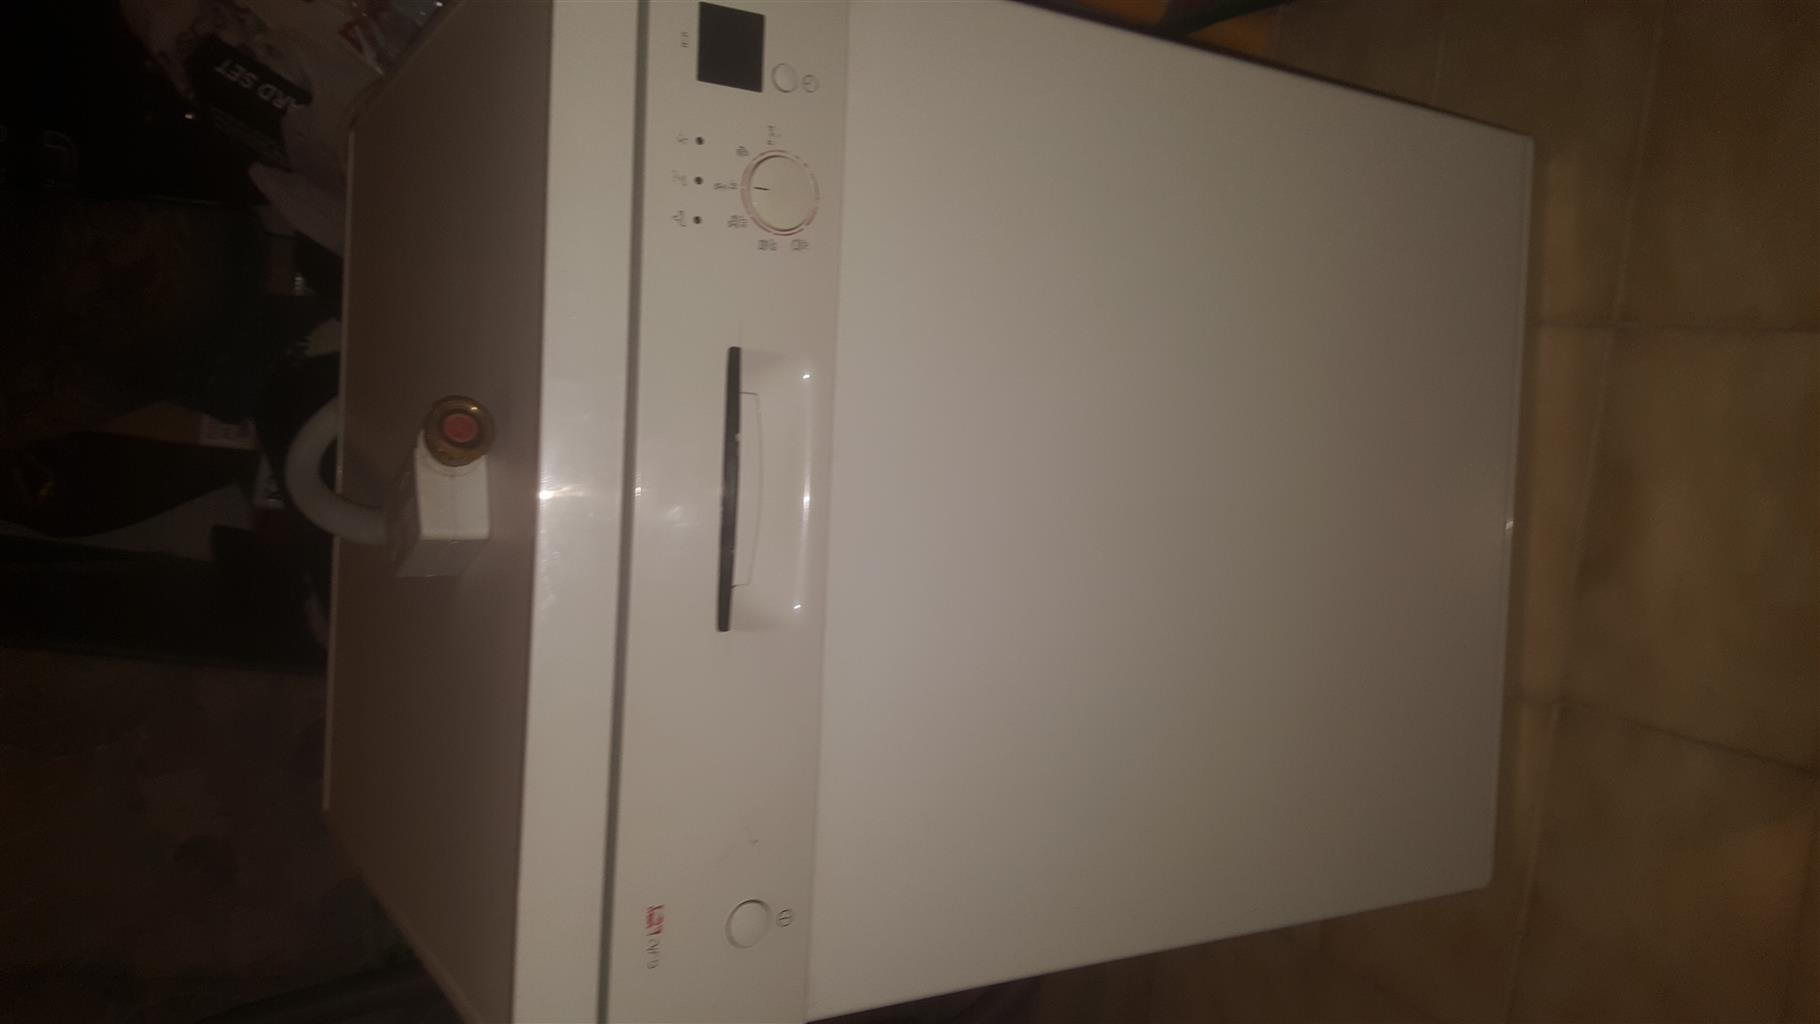 Bosh D/w for sale is in excellent condition